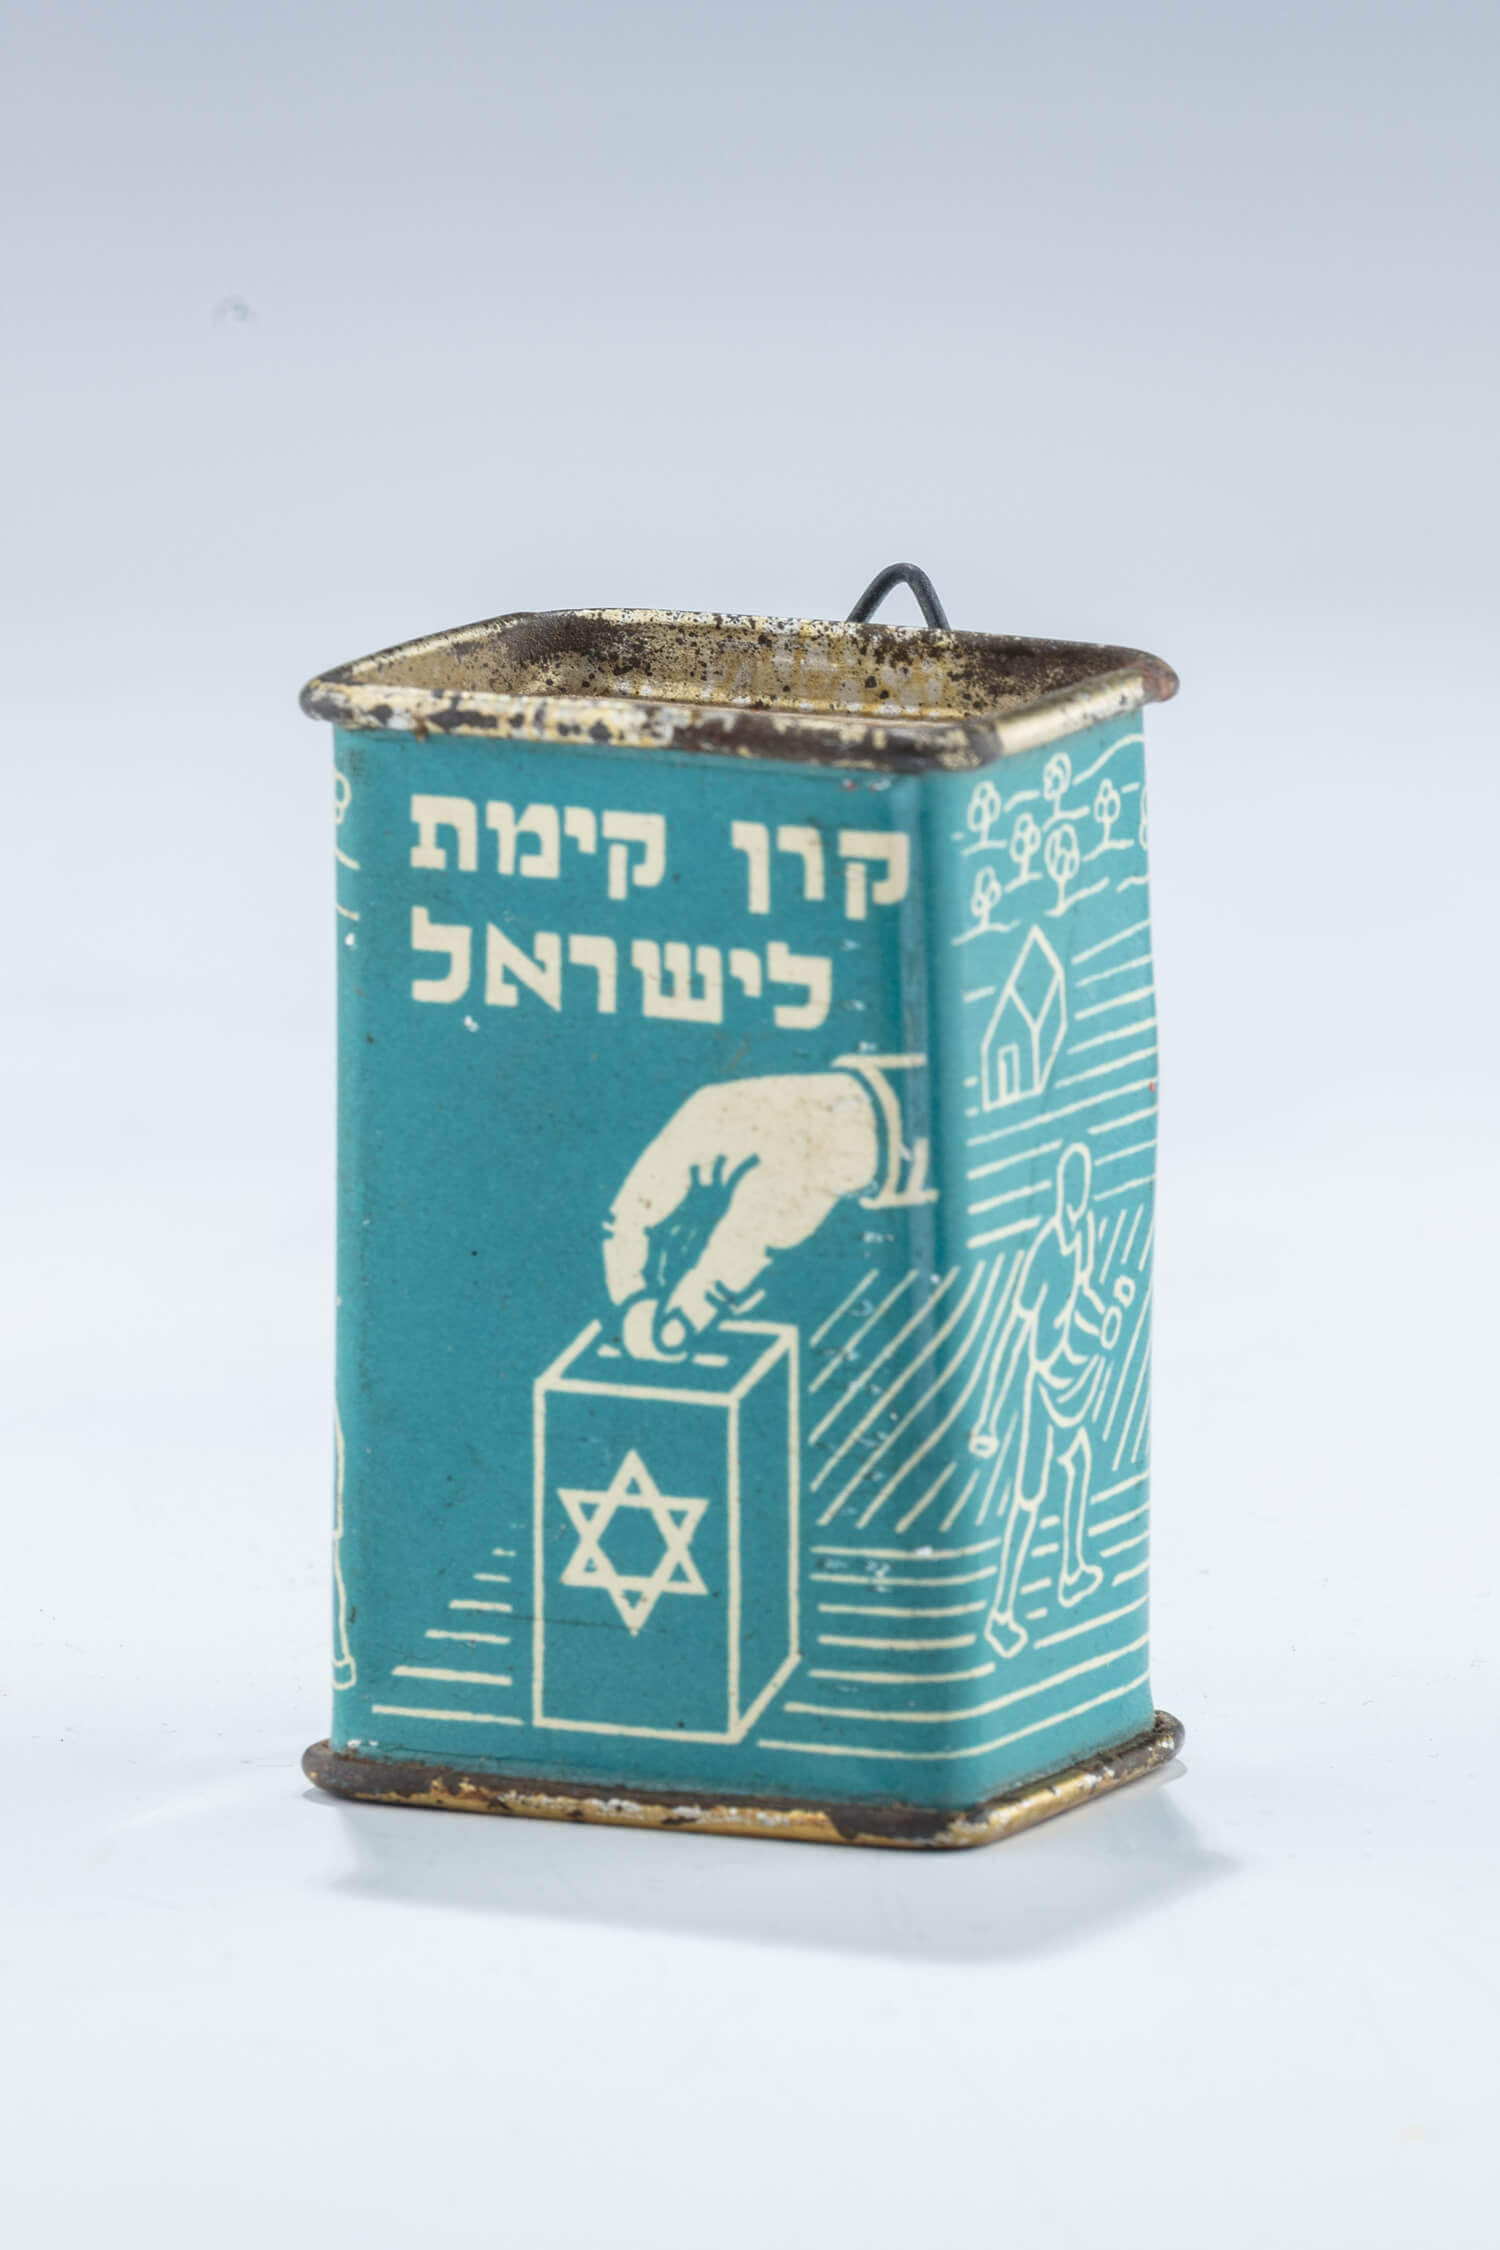 002. A MINIATURE JNF COLLECTION BOX FOR CHILDREN